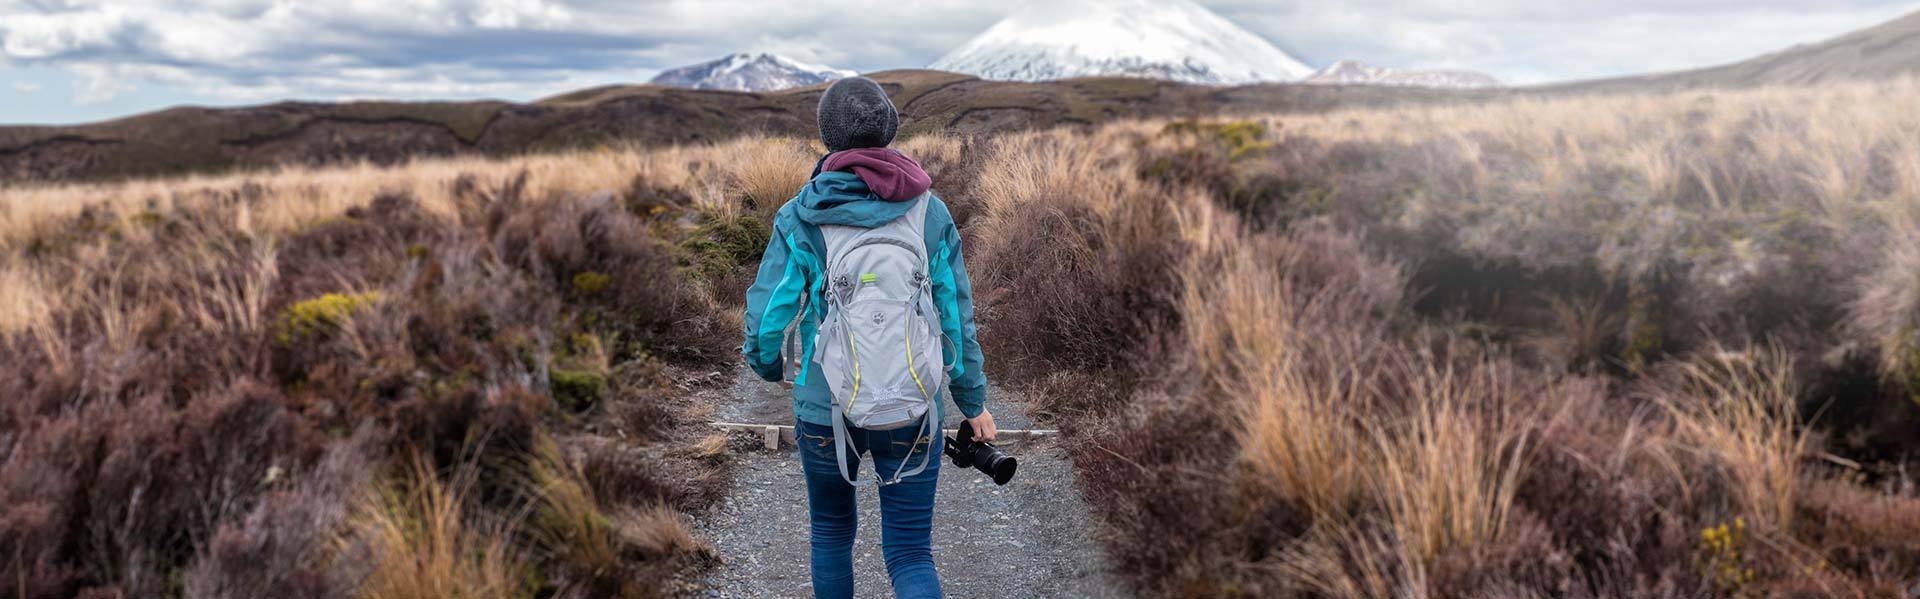 Responsible Travel & Responsible Tourism. Helping Dreamers Do